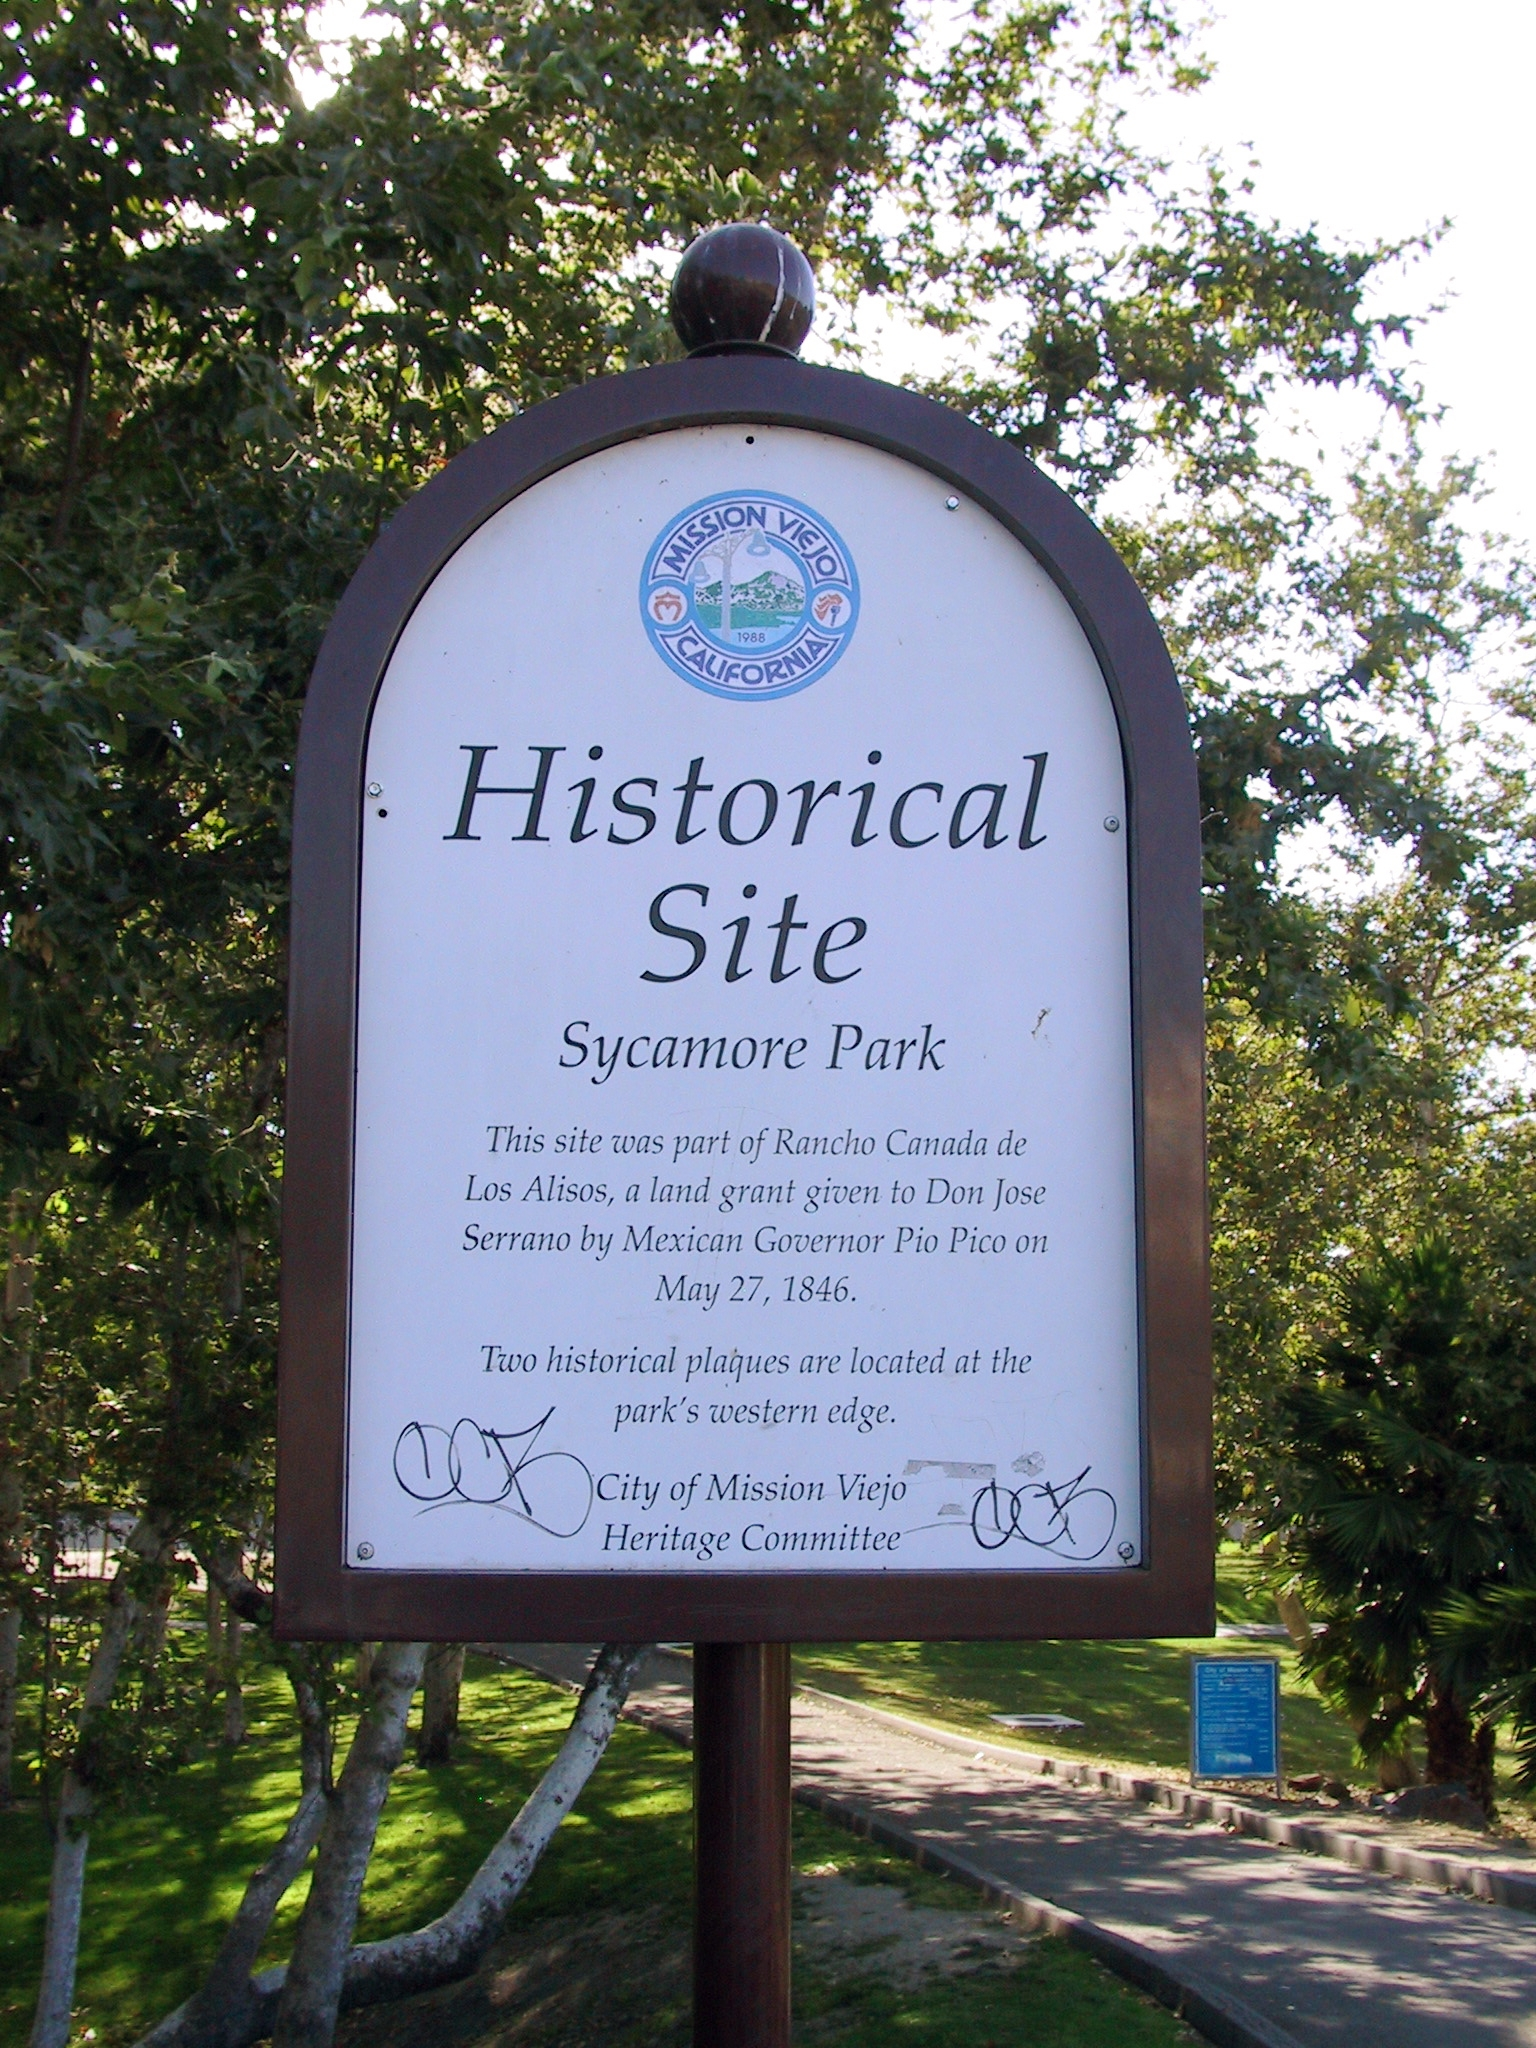 Historical Site = Sycamore Park